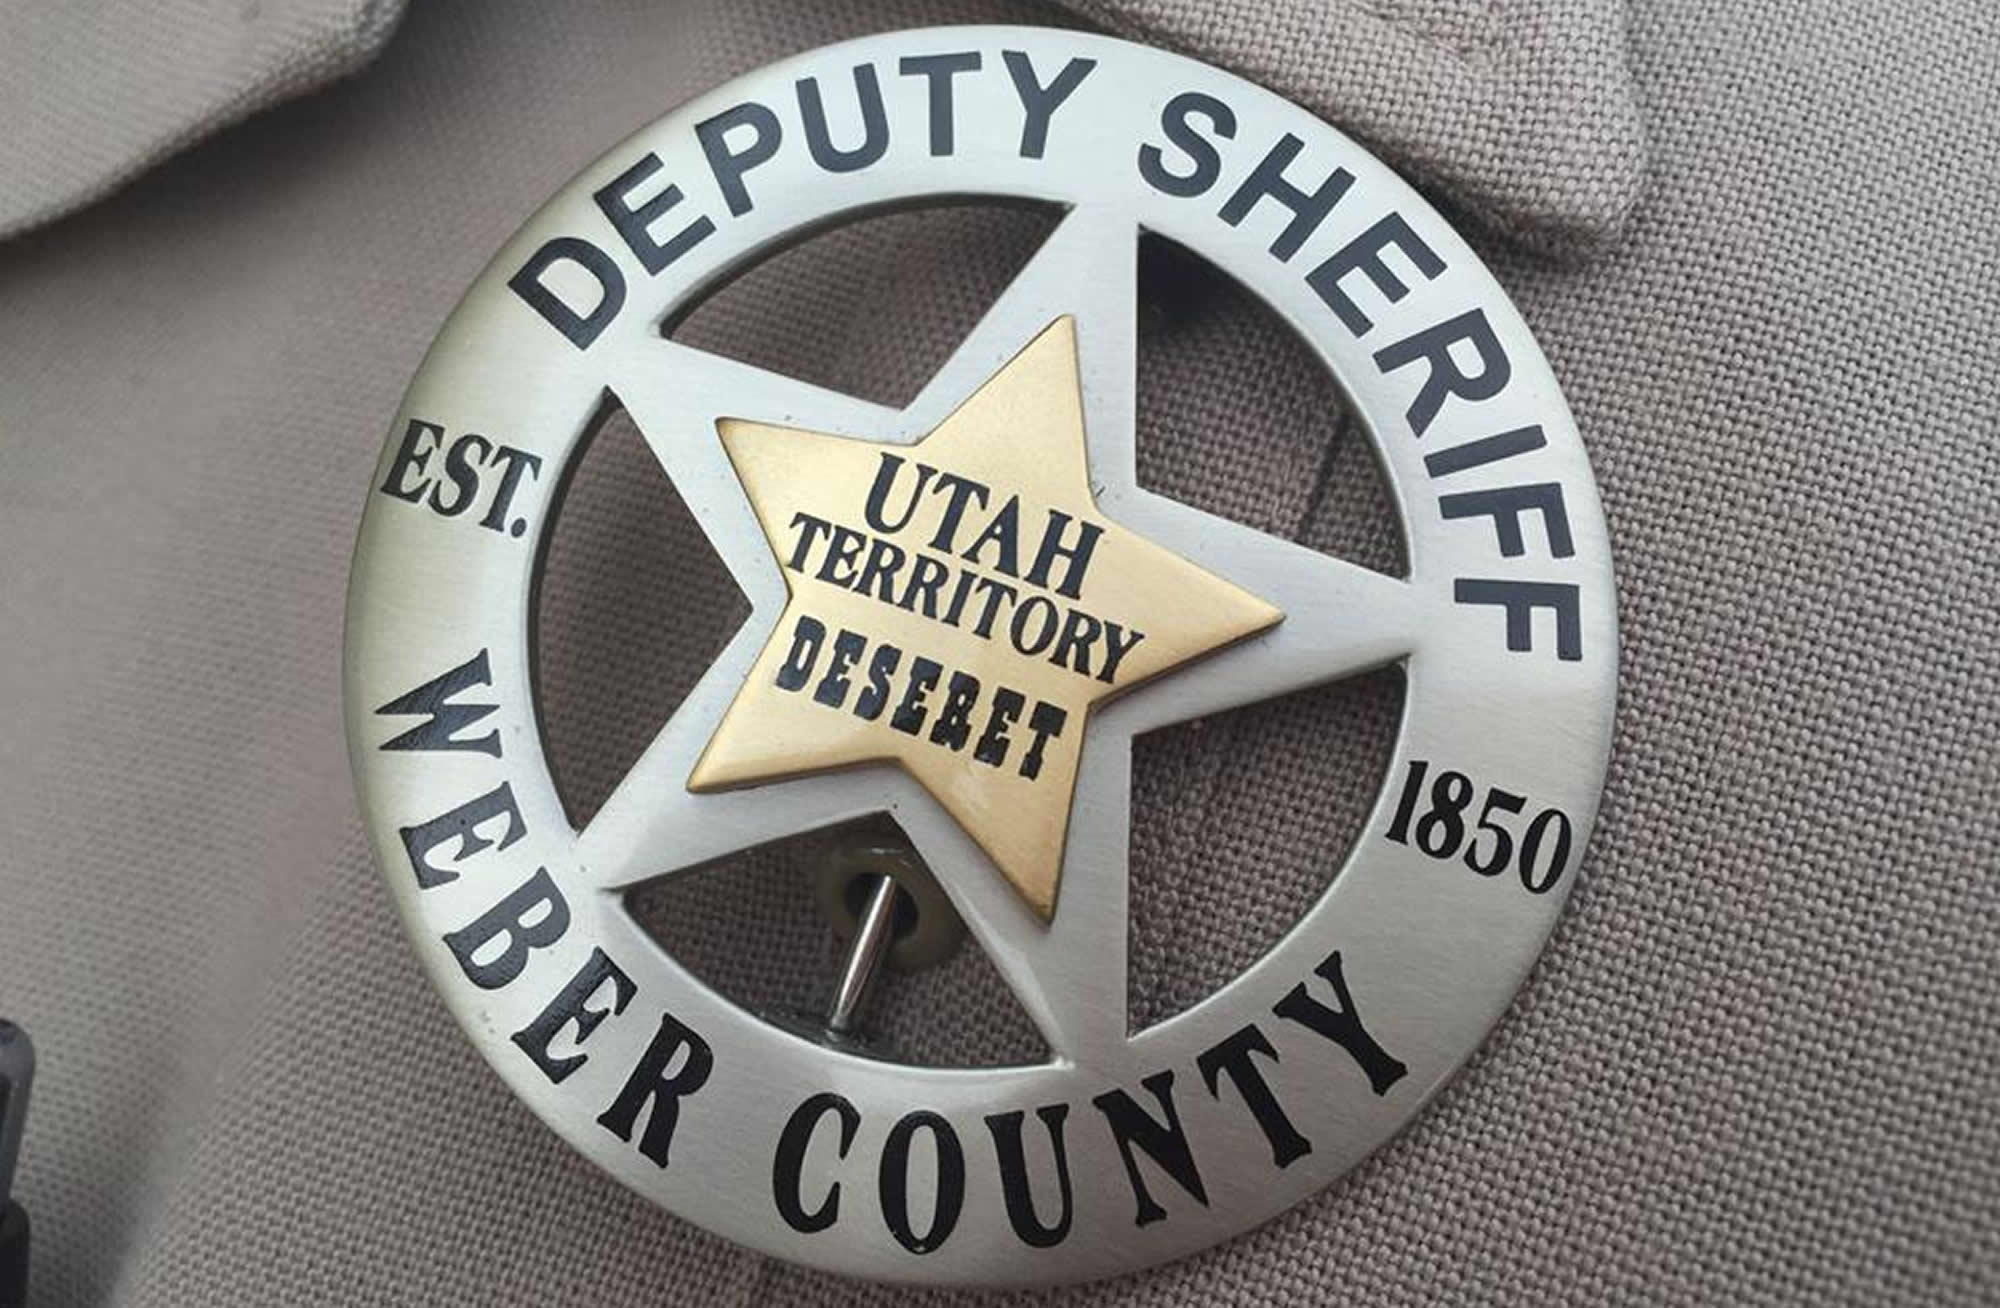 Weber County Sheriff - Corrections